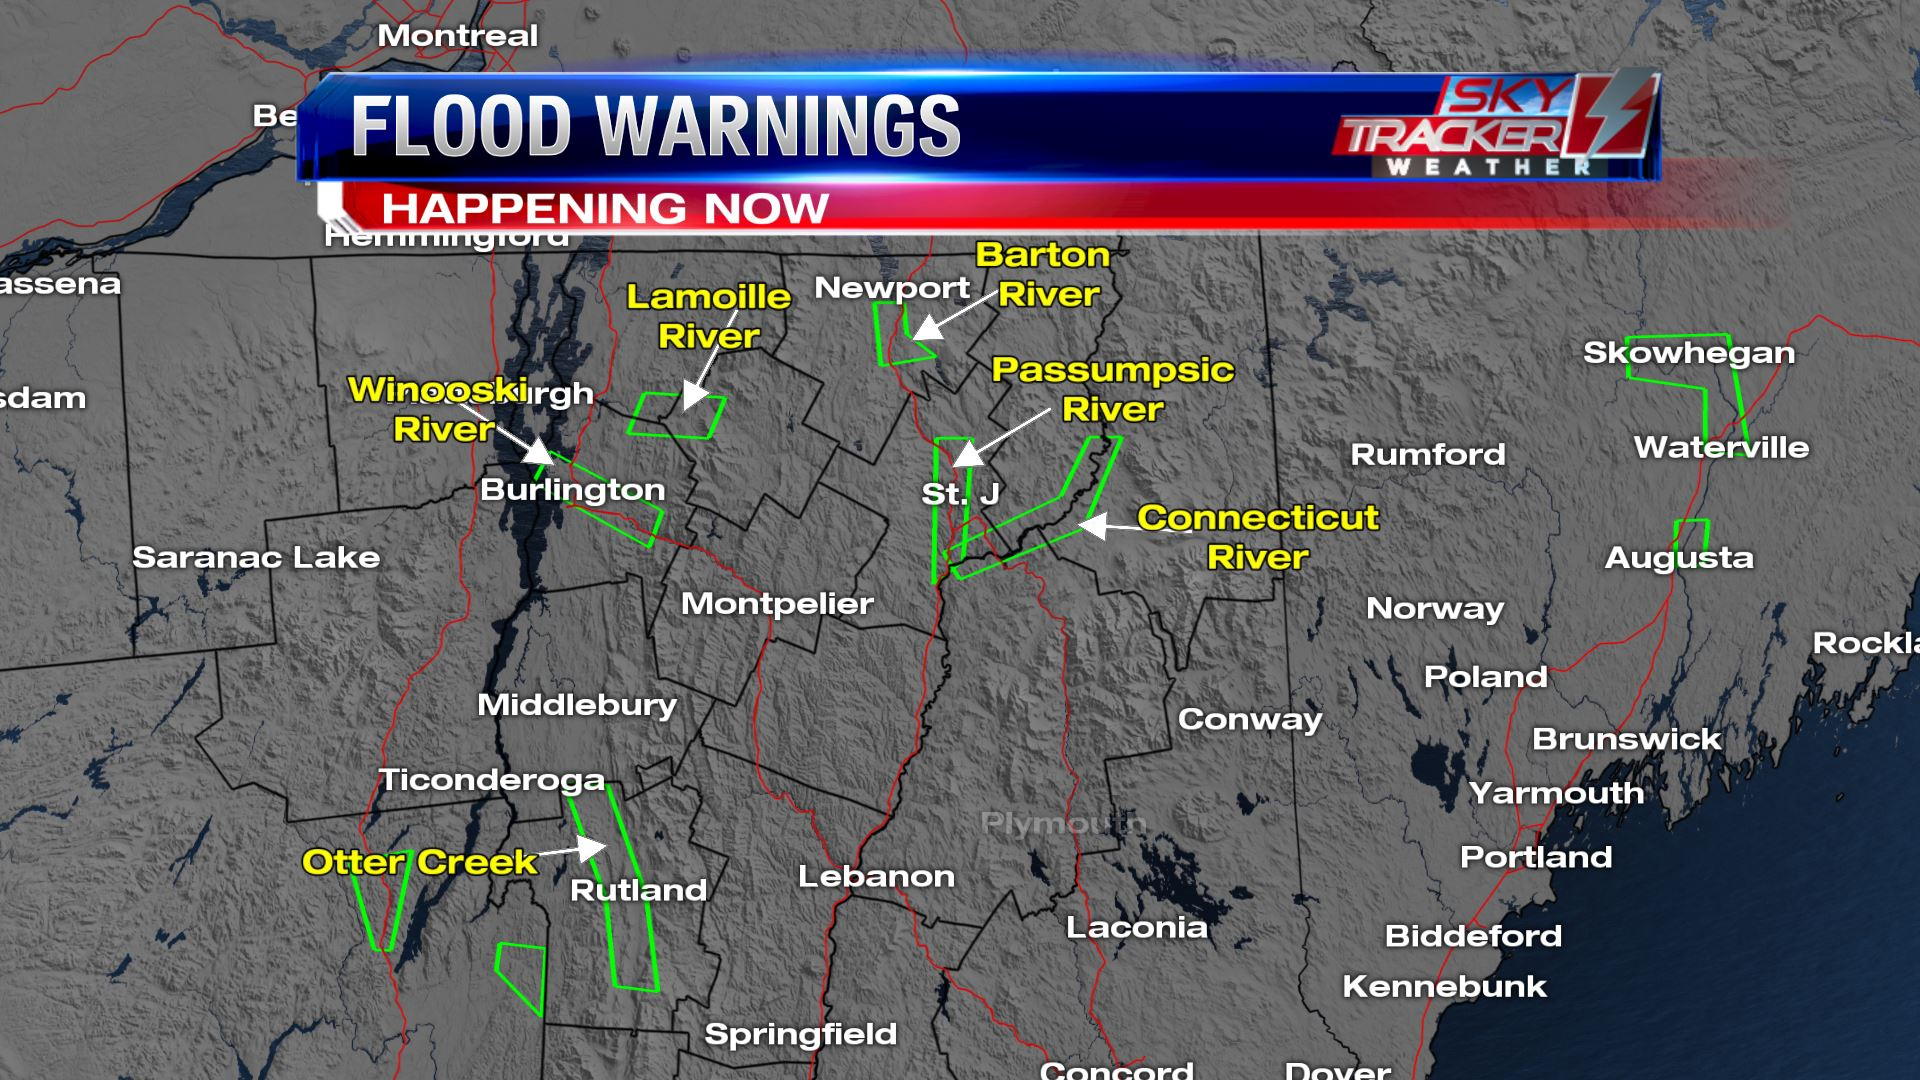 Flood warnings as of 1130pm April 15 2019